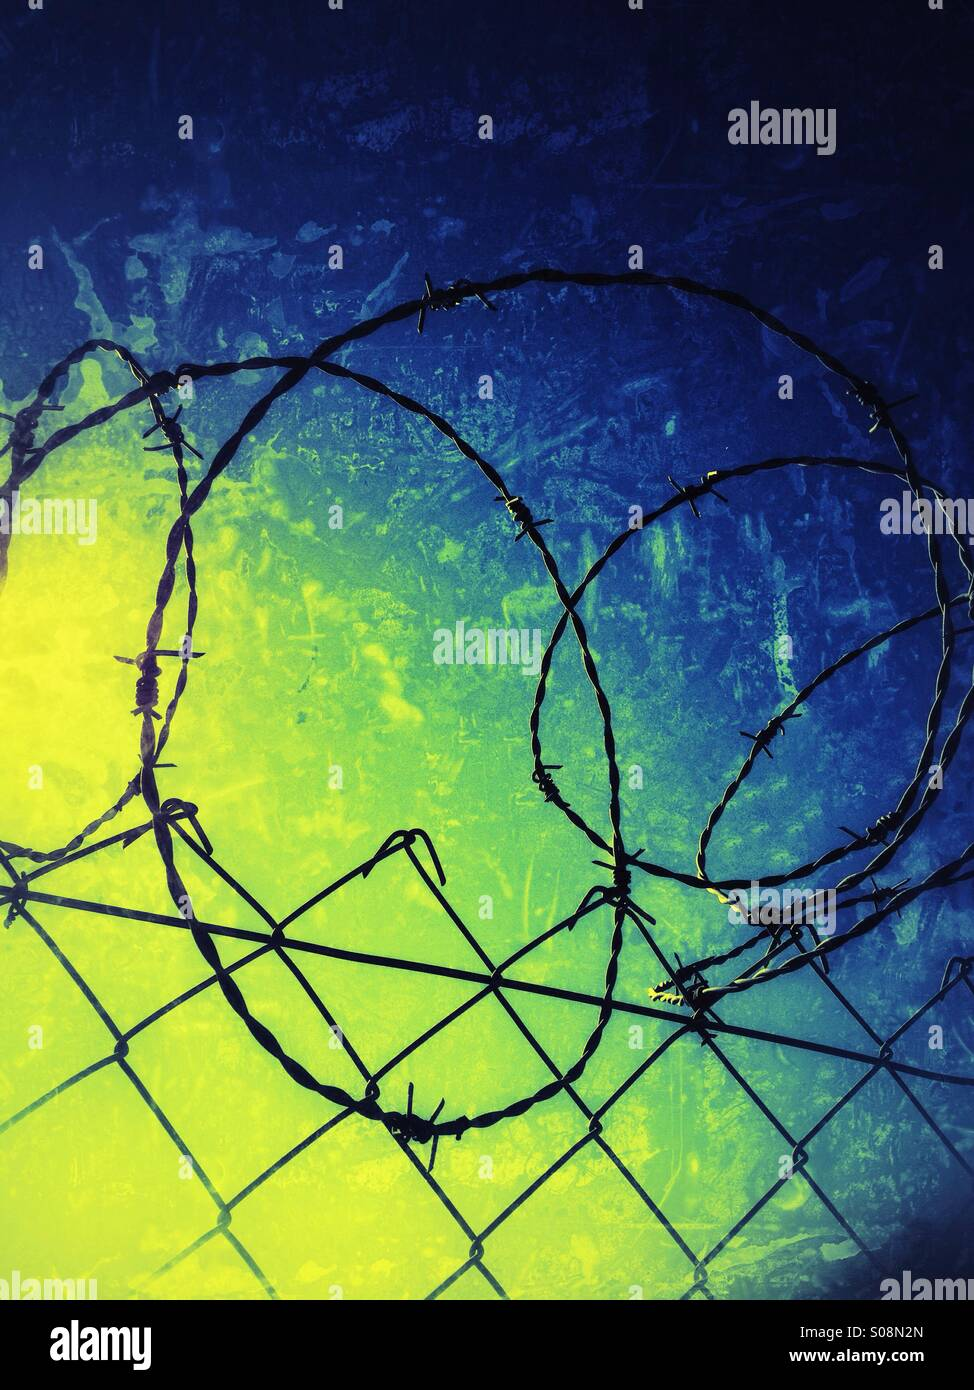 Barbed Wire Concept Stock Photos & Barbed Wire Concept Stock Images ...